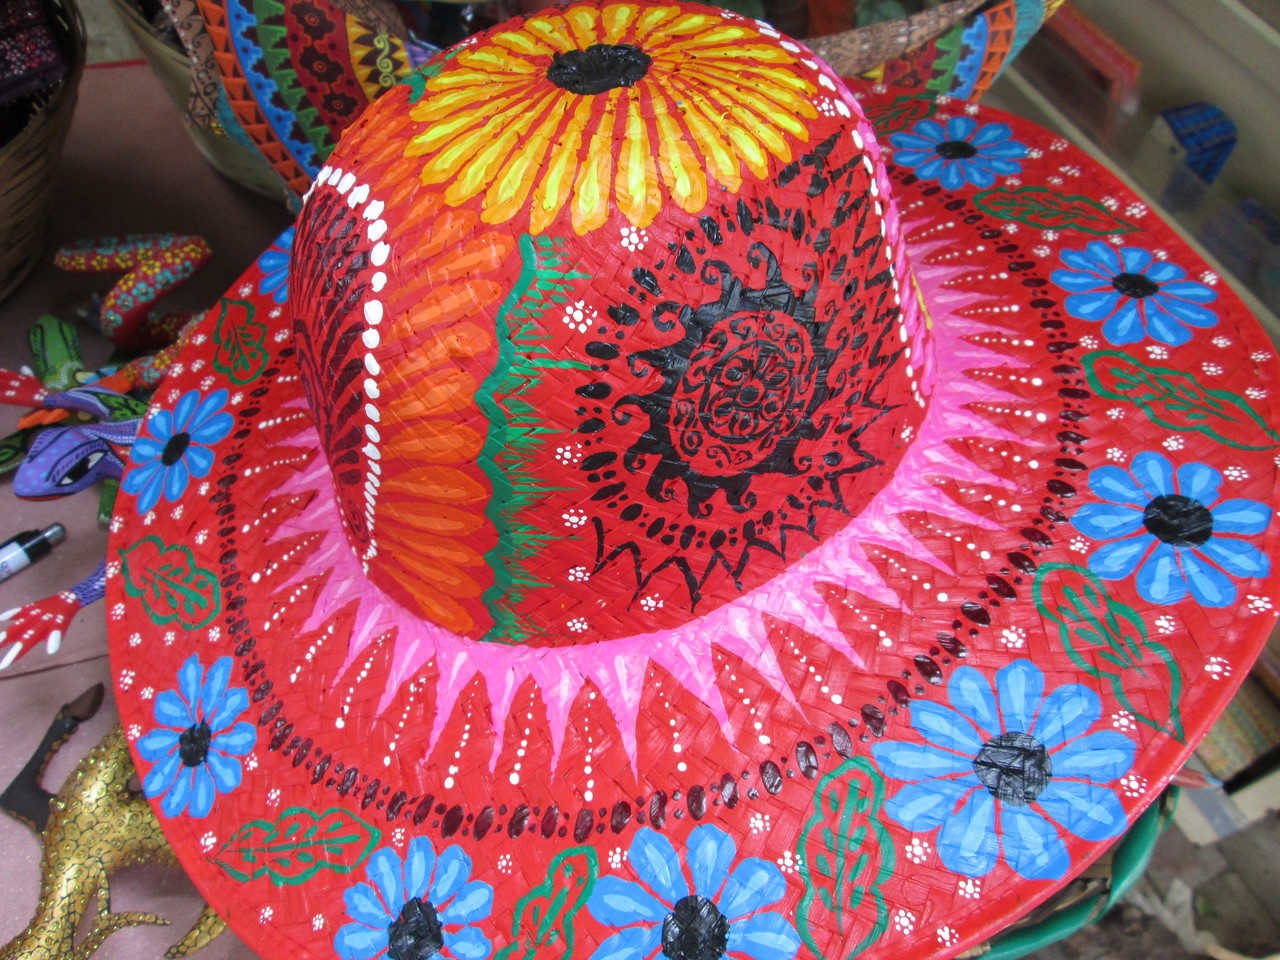 Painted Hat in Oaxaca